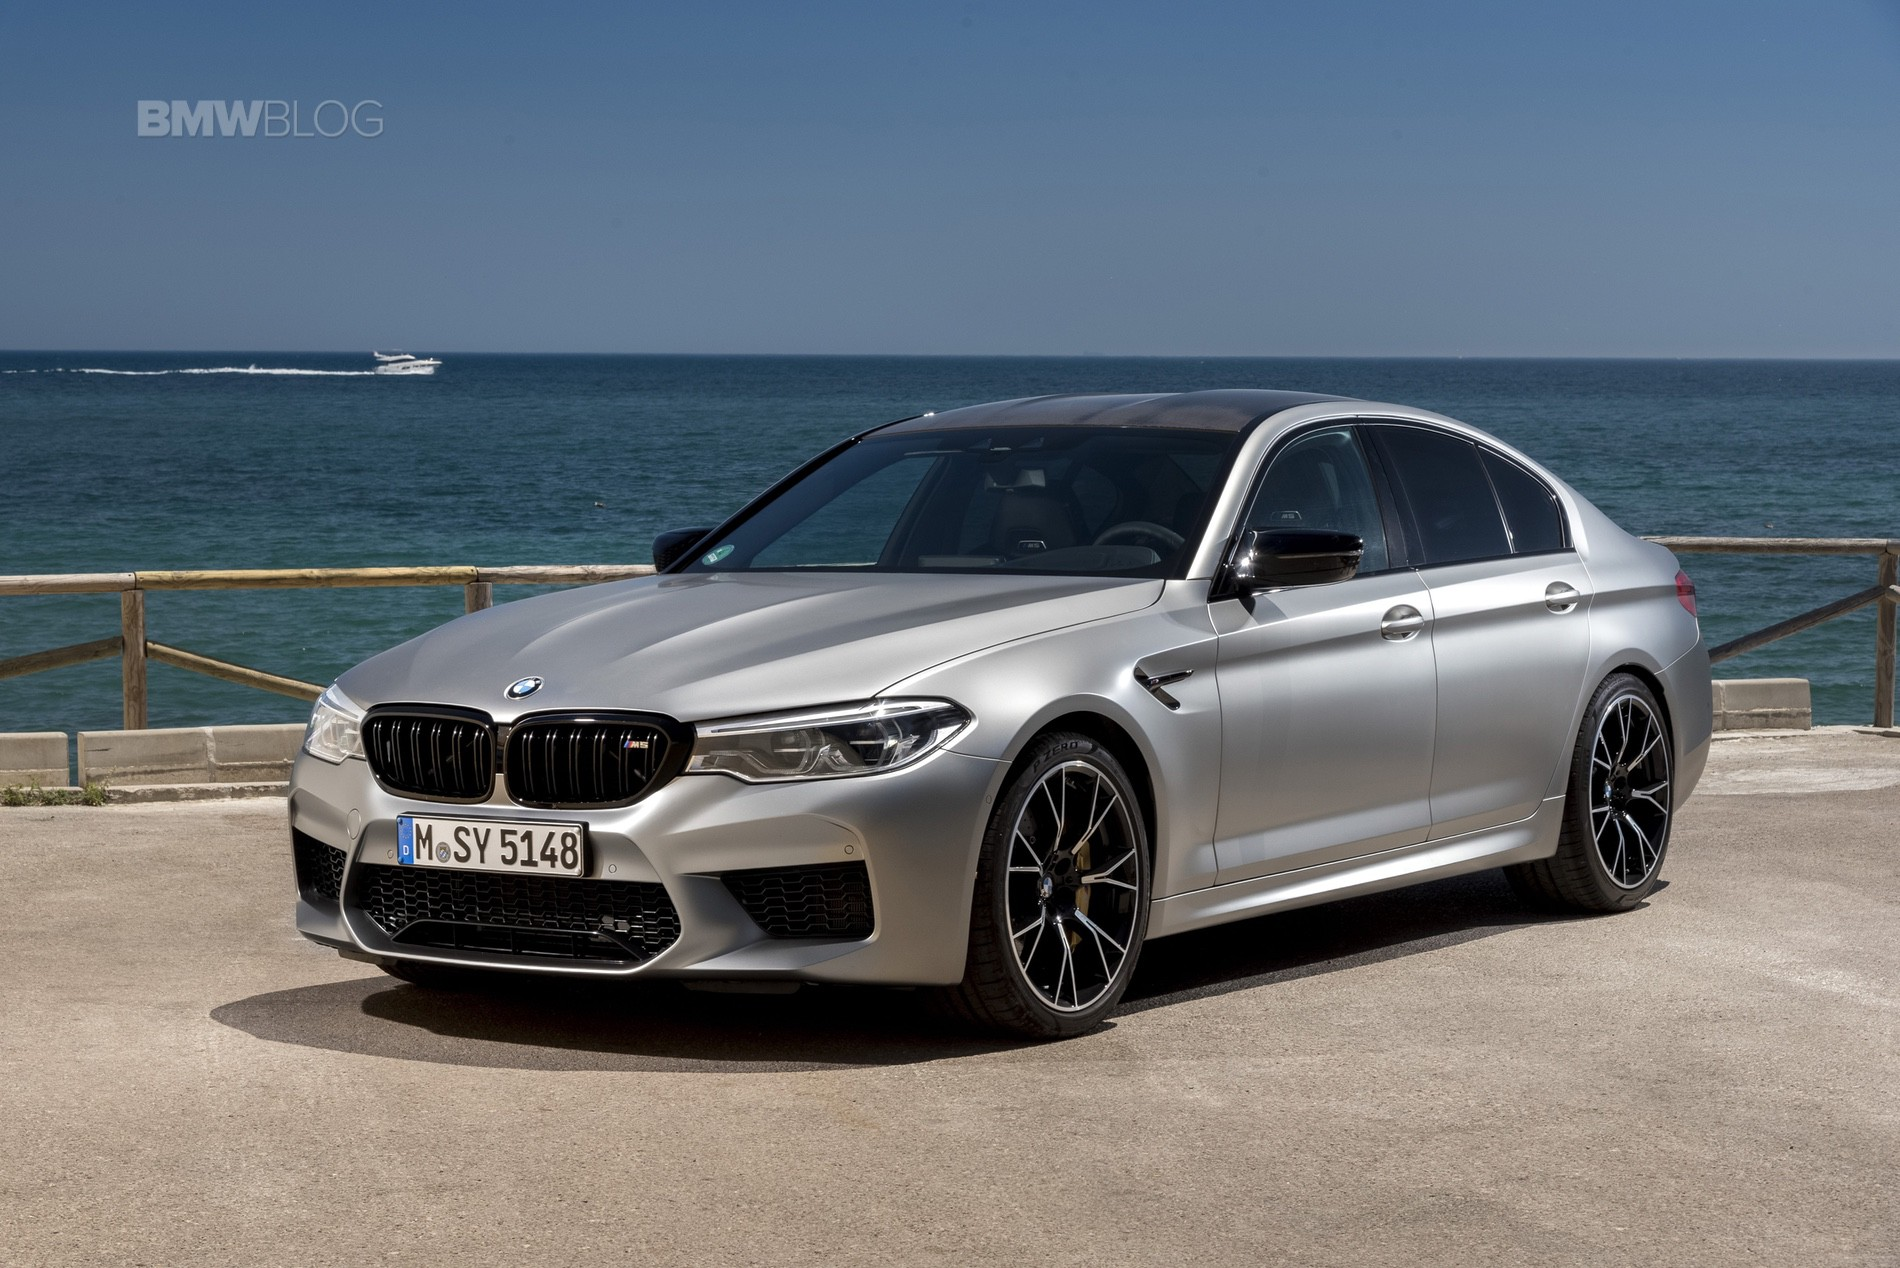 Video: BMW M5 Competition drag races E63 S AMG